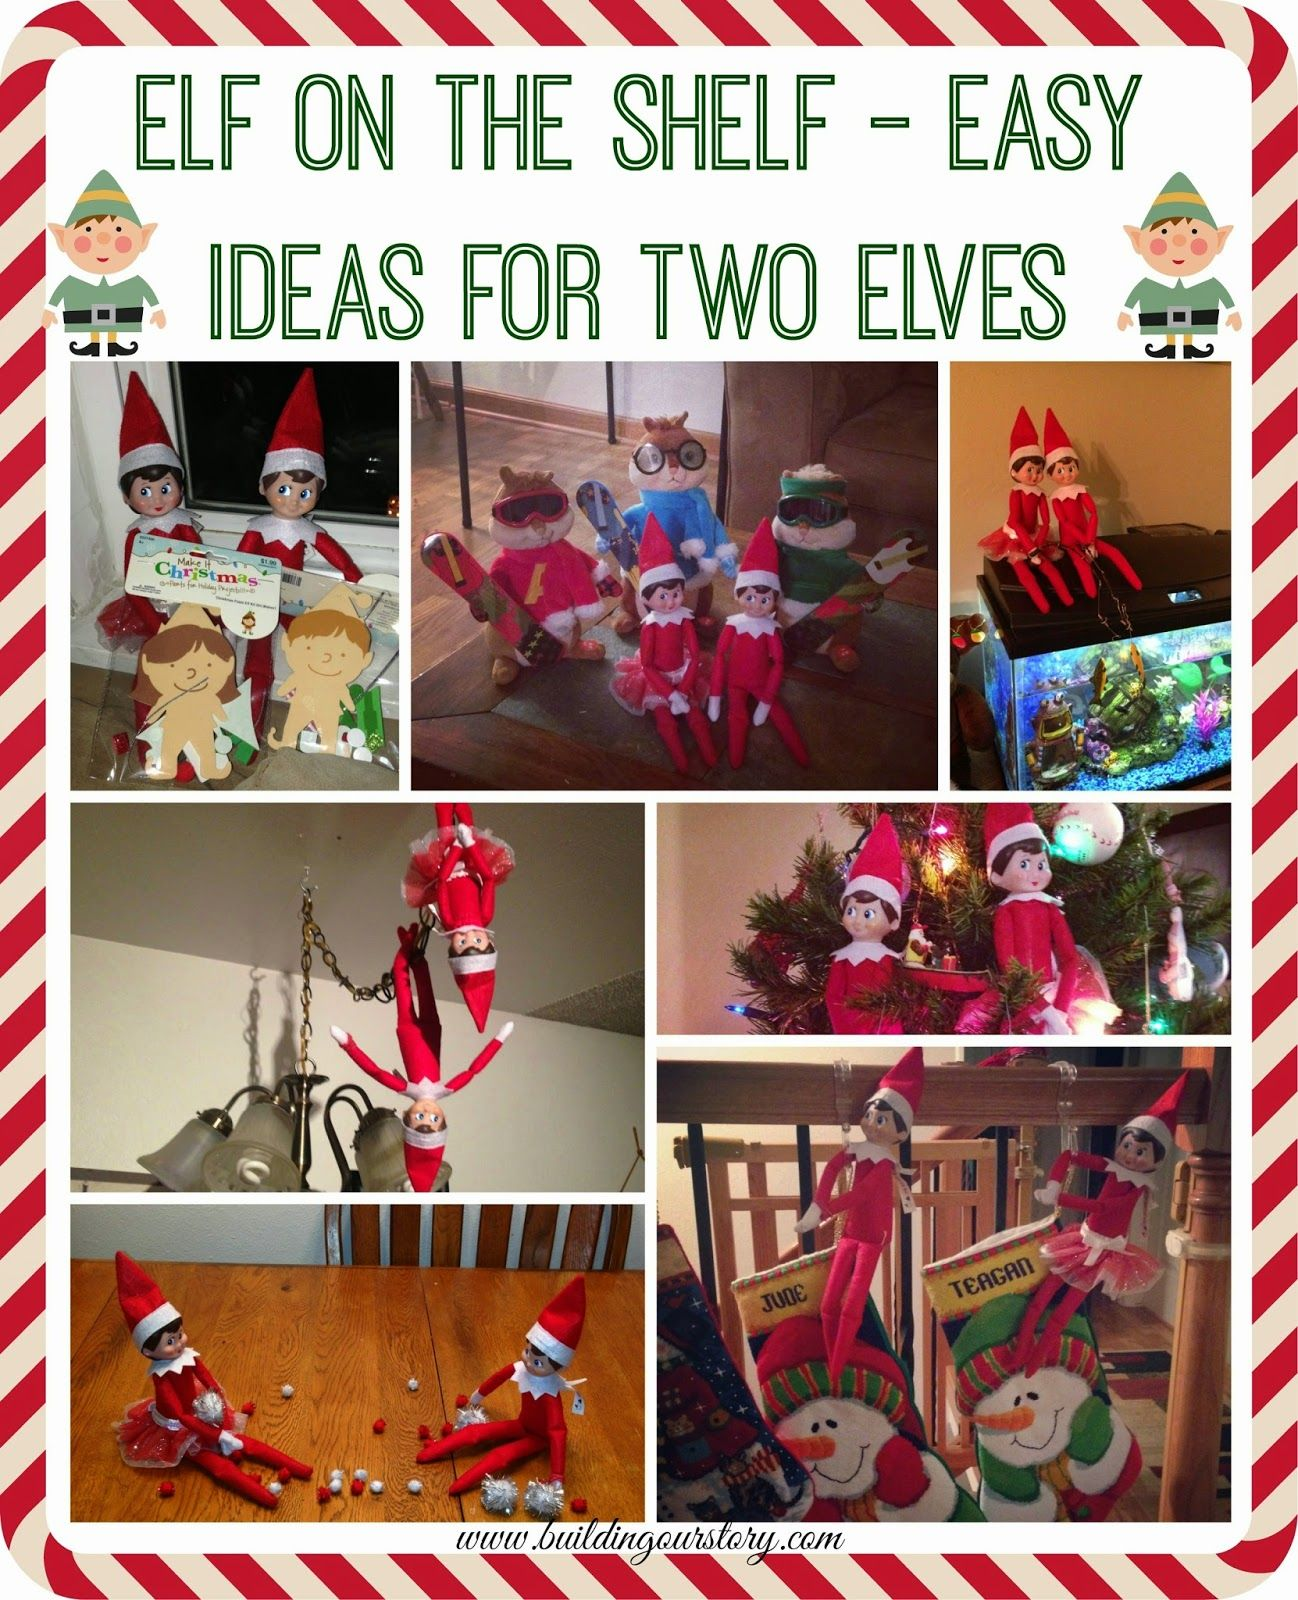 Elf on the Shelf - Easy Ideas For Two Elves | Building Our Story